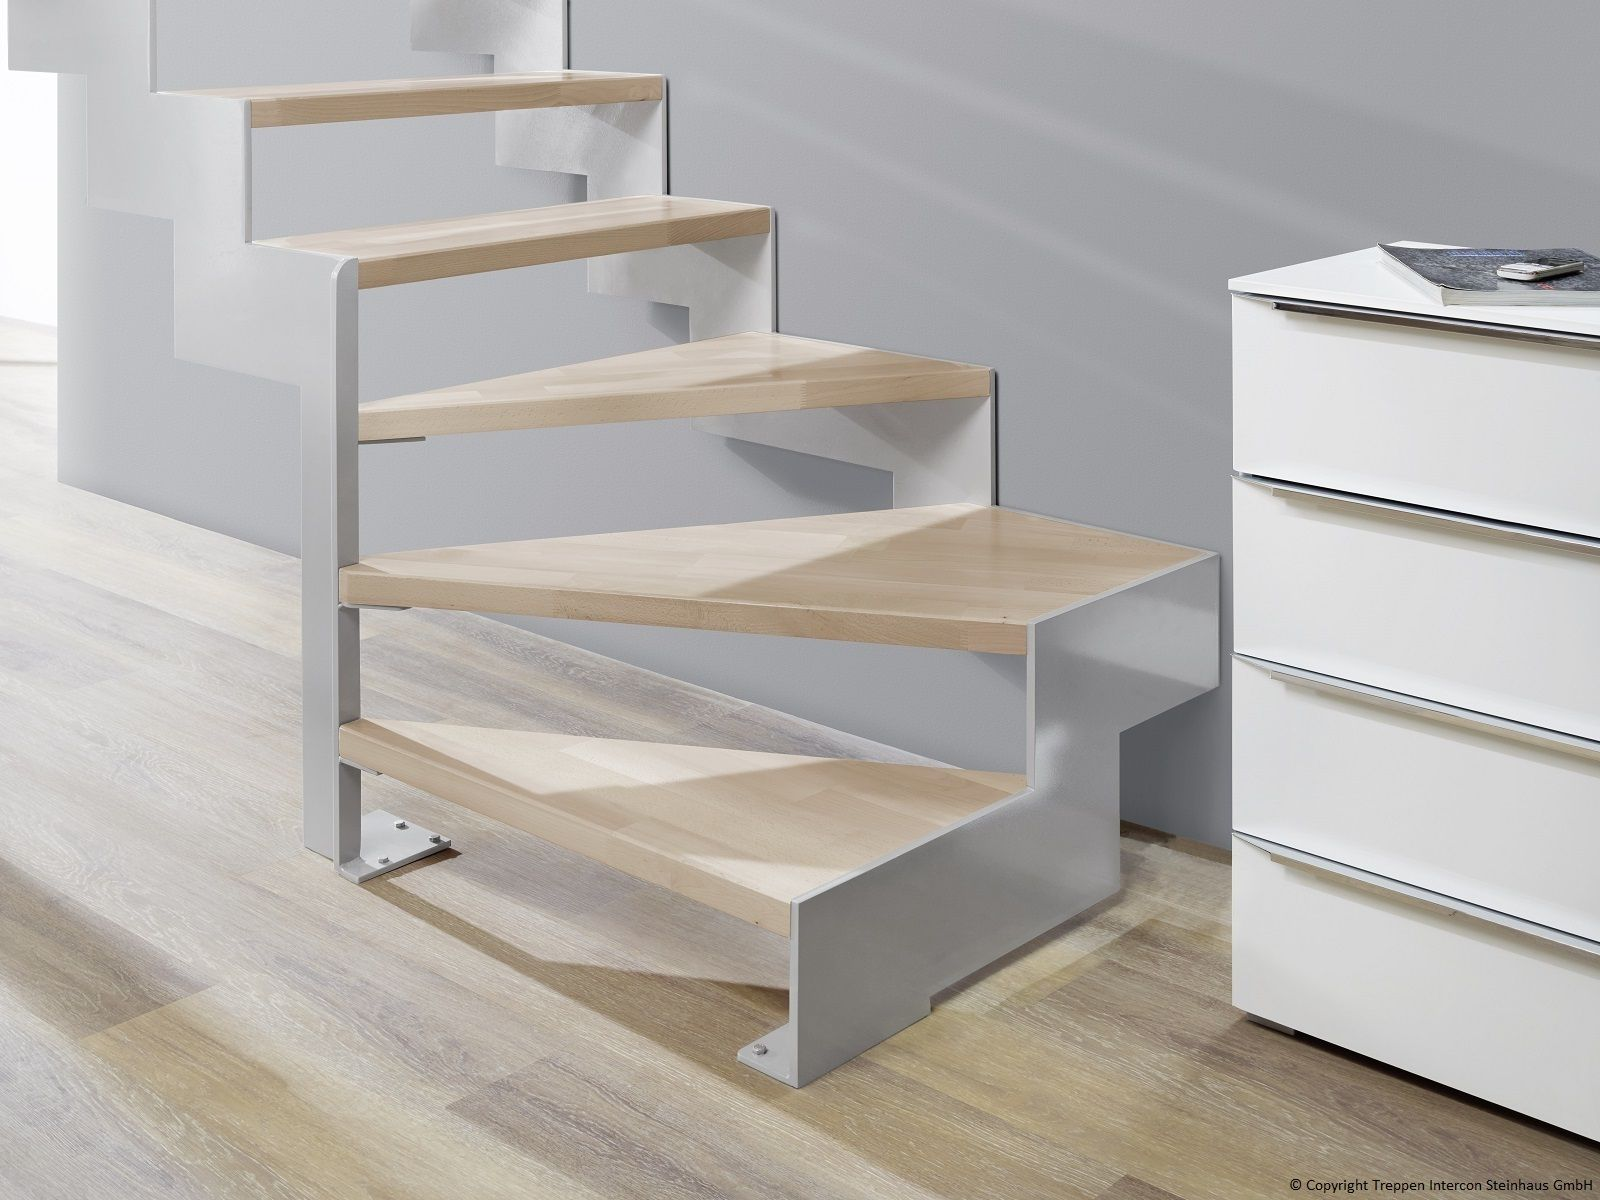 lasergeschnittene treppe 1 4 gewendelt als moderne. Black Bedroom Furniture Sets. Home Design Ideas